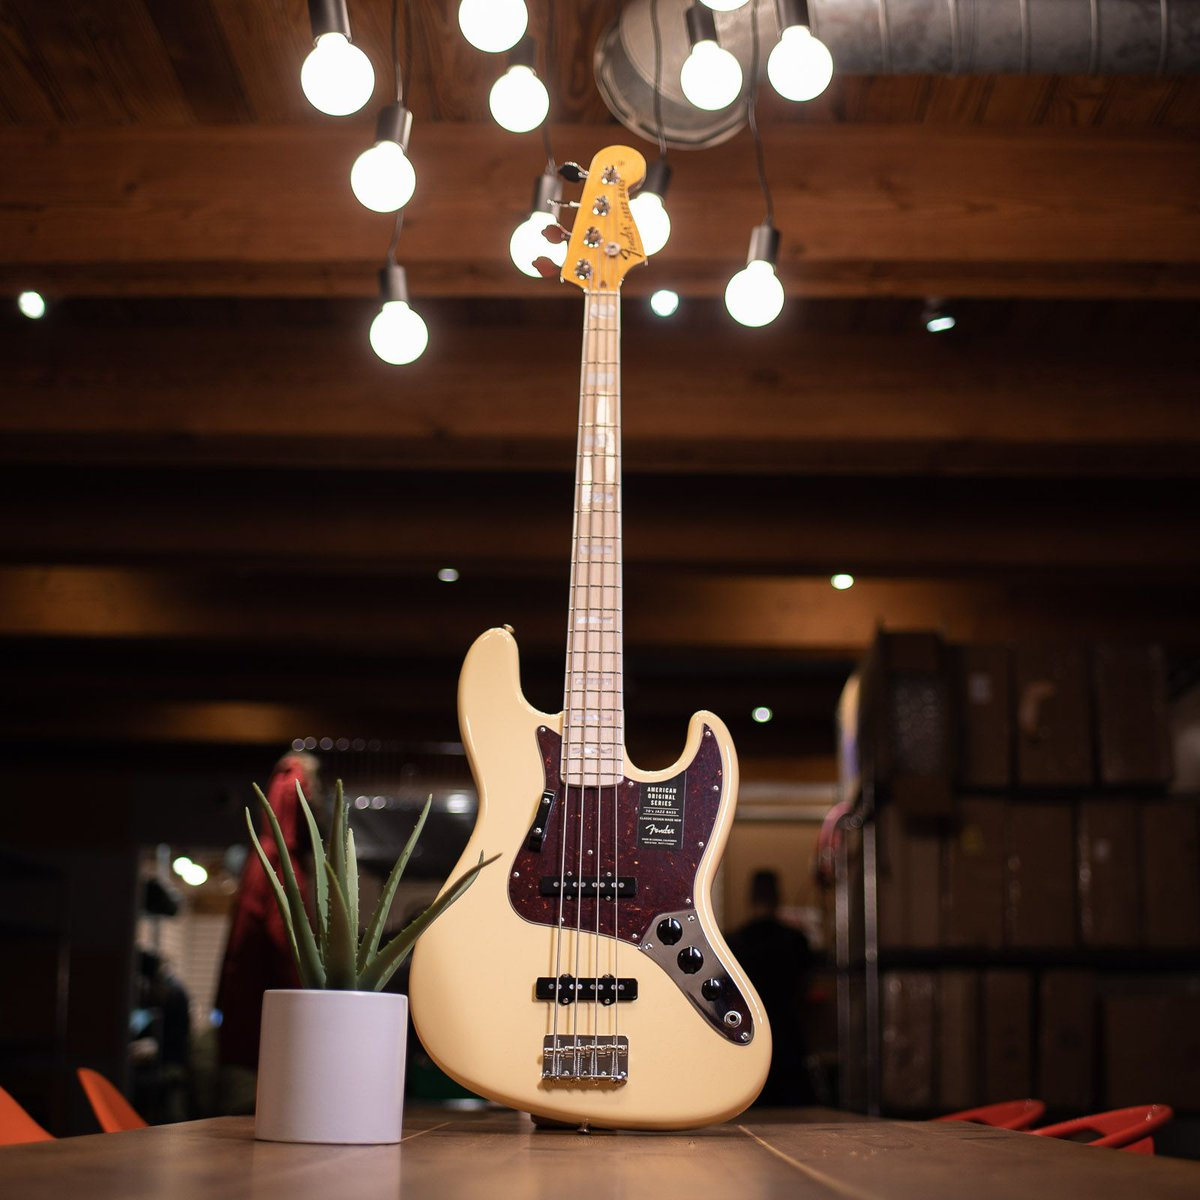 The @Fender American Original '70s Jazz Bass has the feel and tone of the 1970s, without the vintage price tag. https://buff.ly/2SR6kwB #chicagomusicexchange #fender #americanoriginal #70s #jazzbass #vintagewhite #gearwire #gearybusey #guitarspotter #guitarphotographypic.twitter.com/ktLPHWYG1k